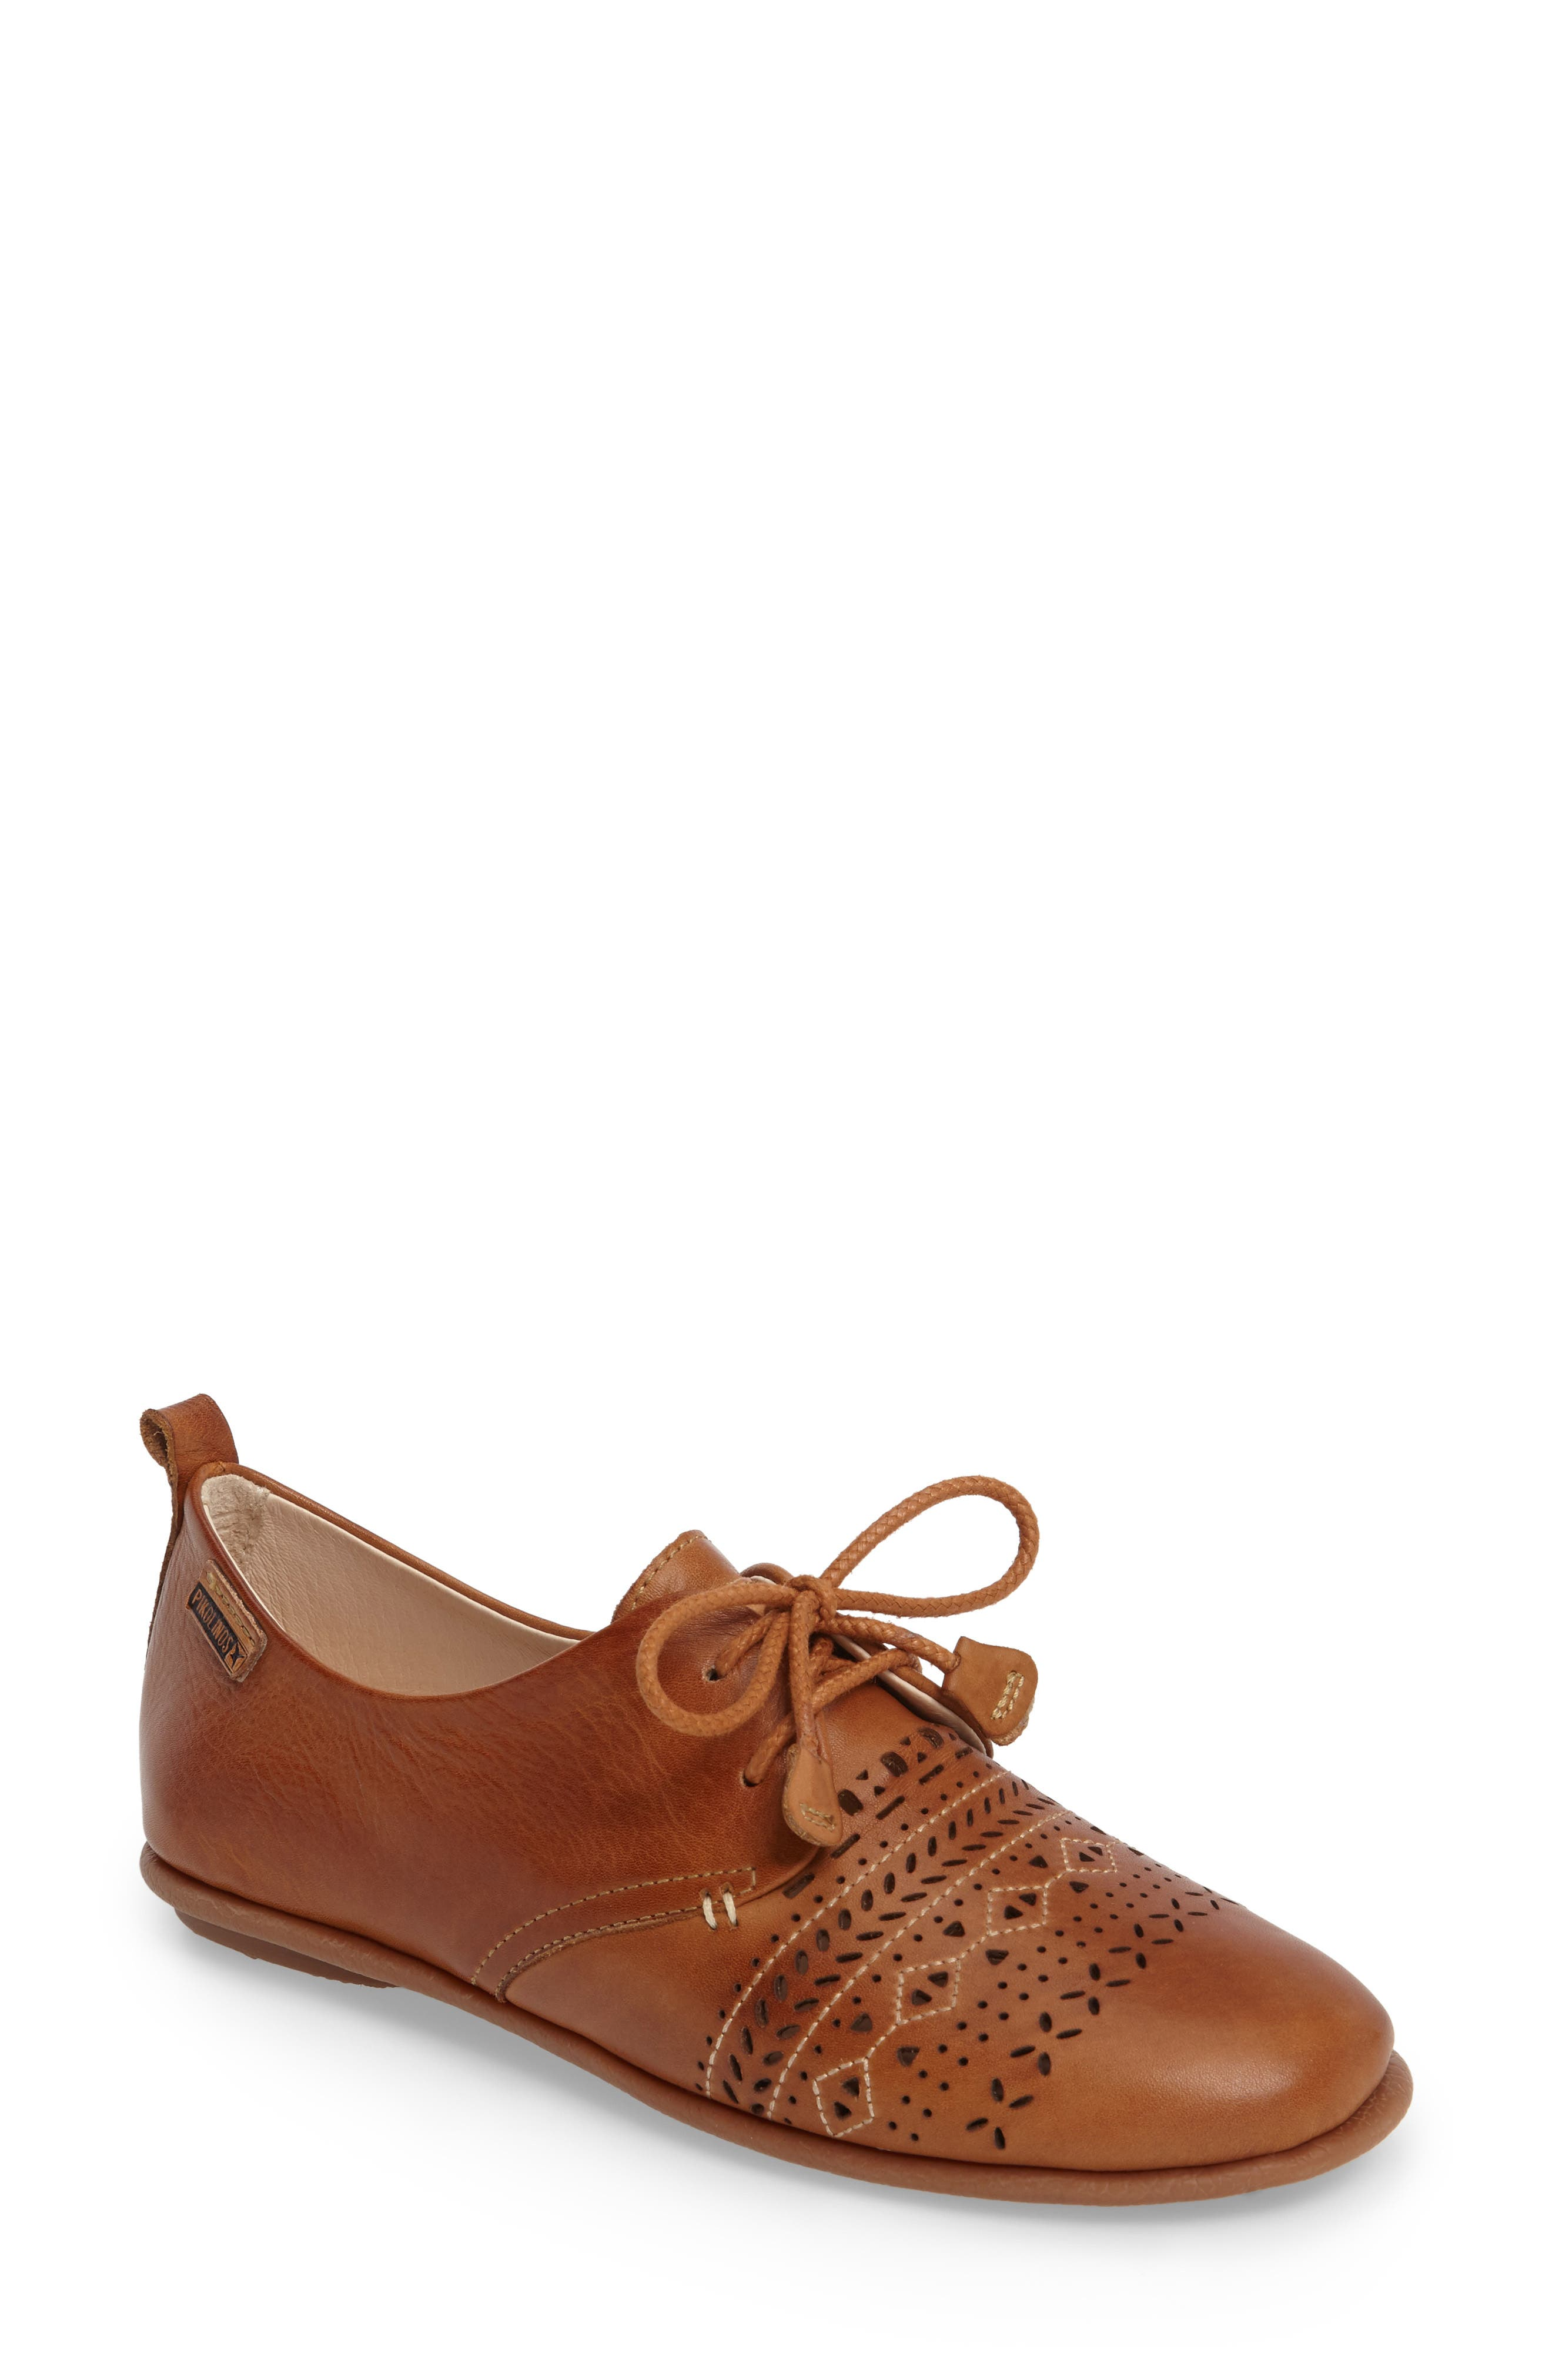 Calabria Derby Flat,                         Main,                         color, 200